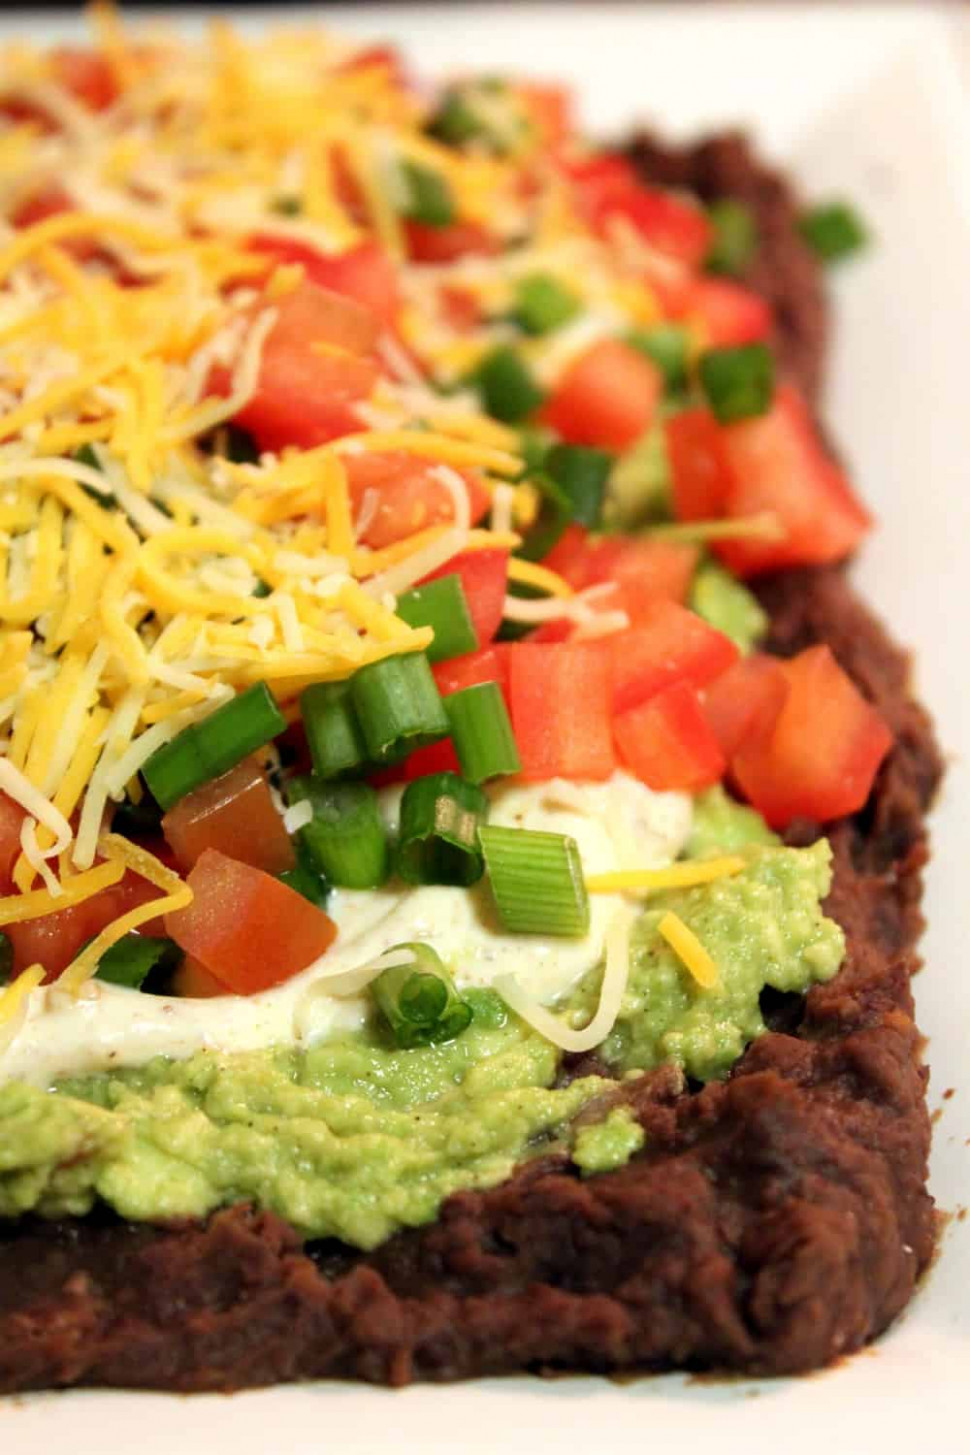 Guilt-Free, Healthy 7 Layer Bean Dip - The Picky Eater - healthy food recipes